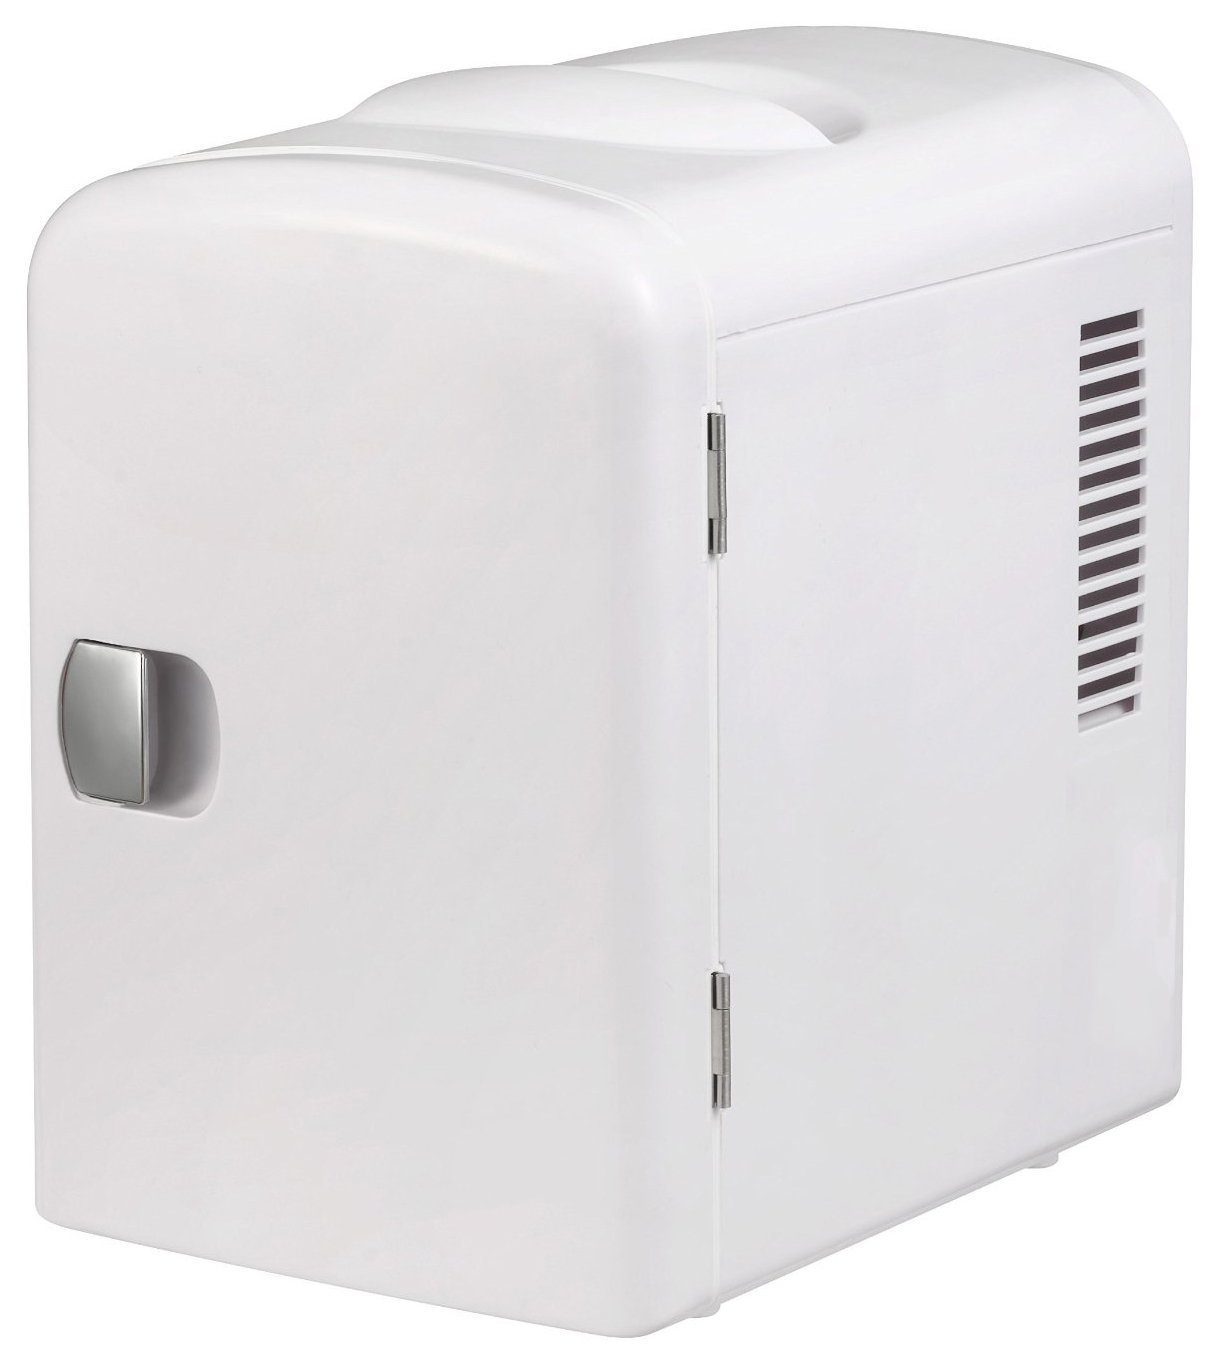 Gourmia GMF600 Portable 6 Can Mini Fridge Cooler and Warmer for Home ,Office, Car or Boat AC & DC (White)